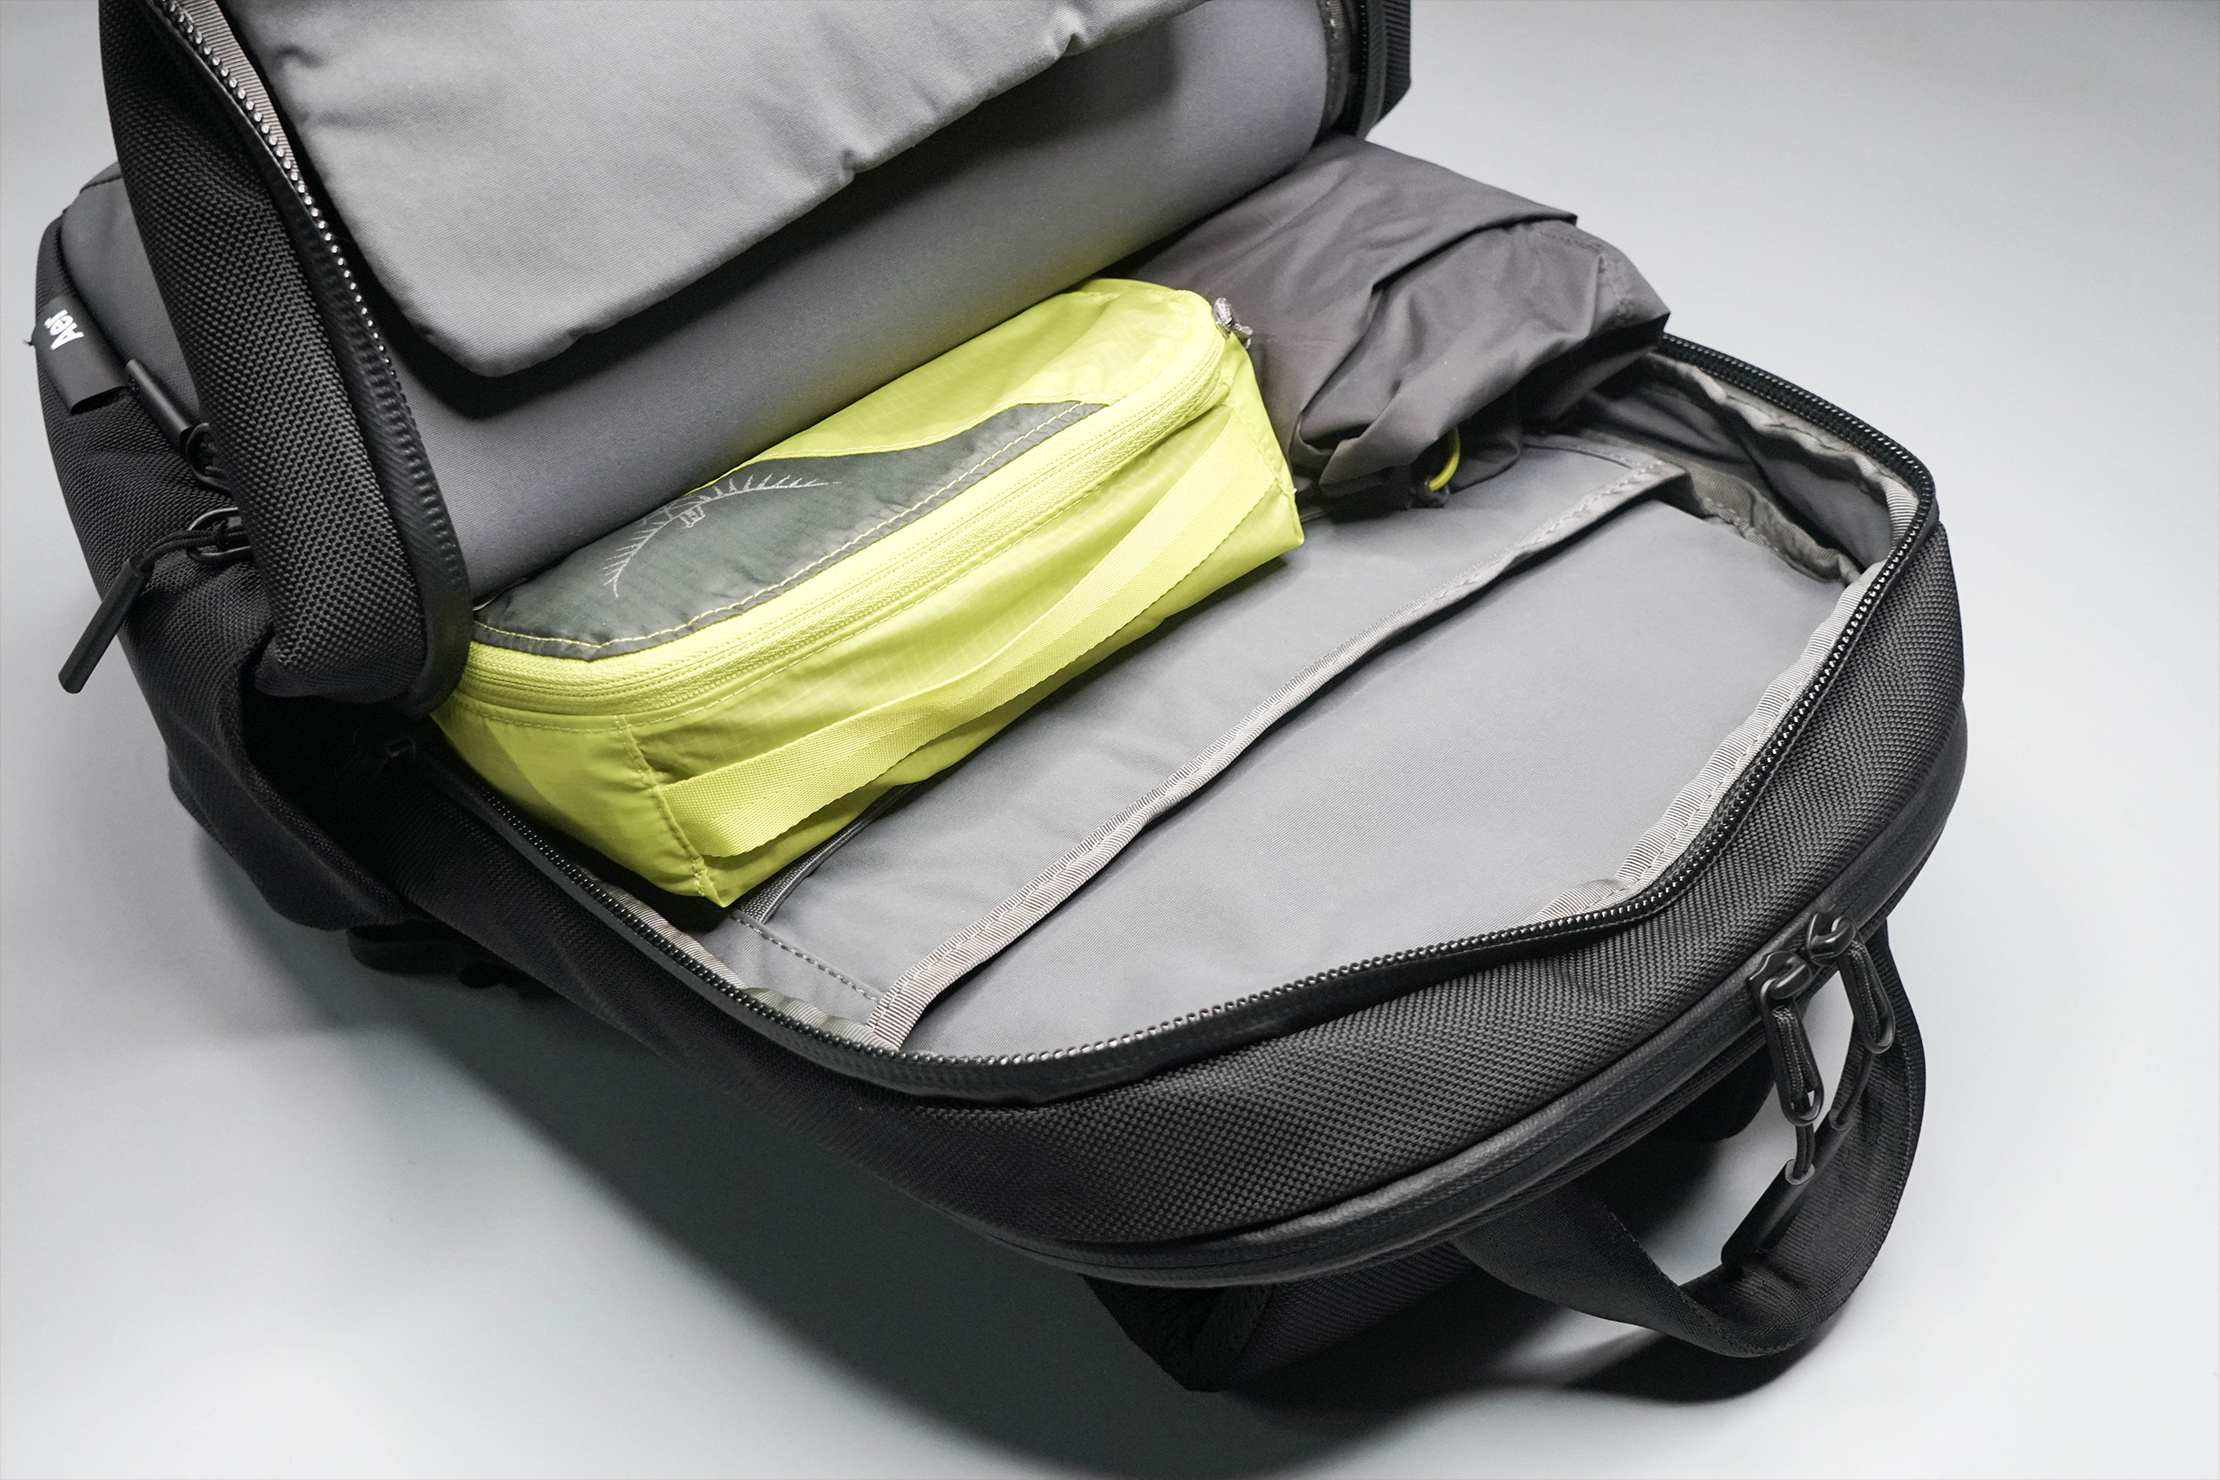 Aer Tech Pack 2 Main Compartment